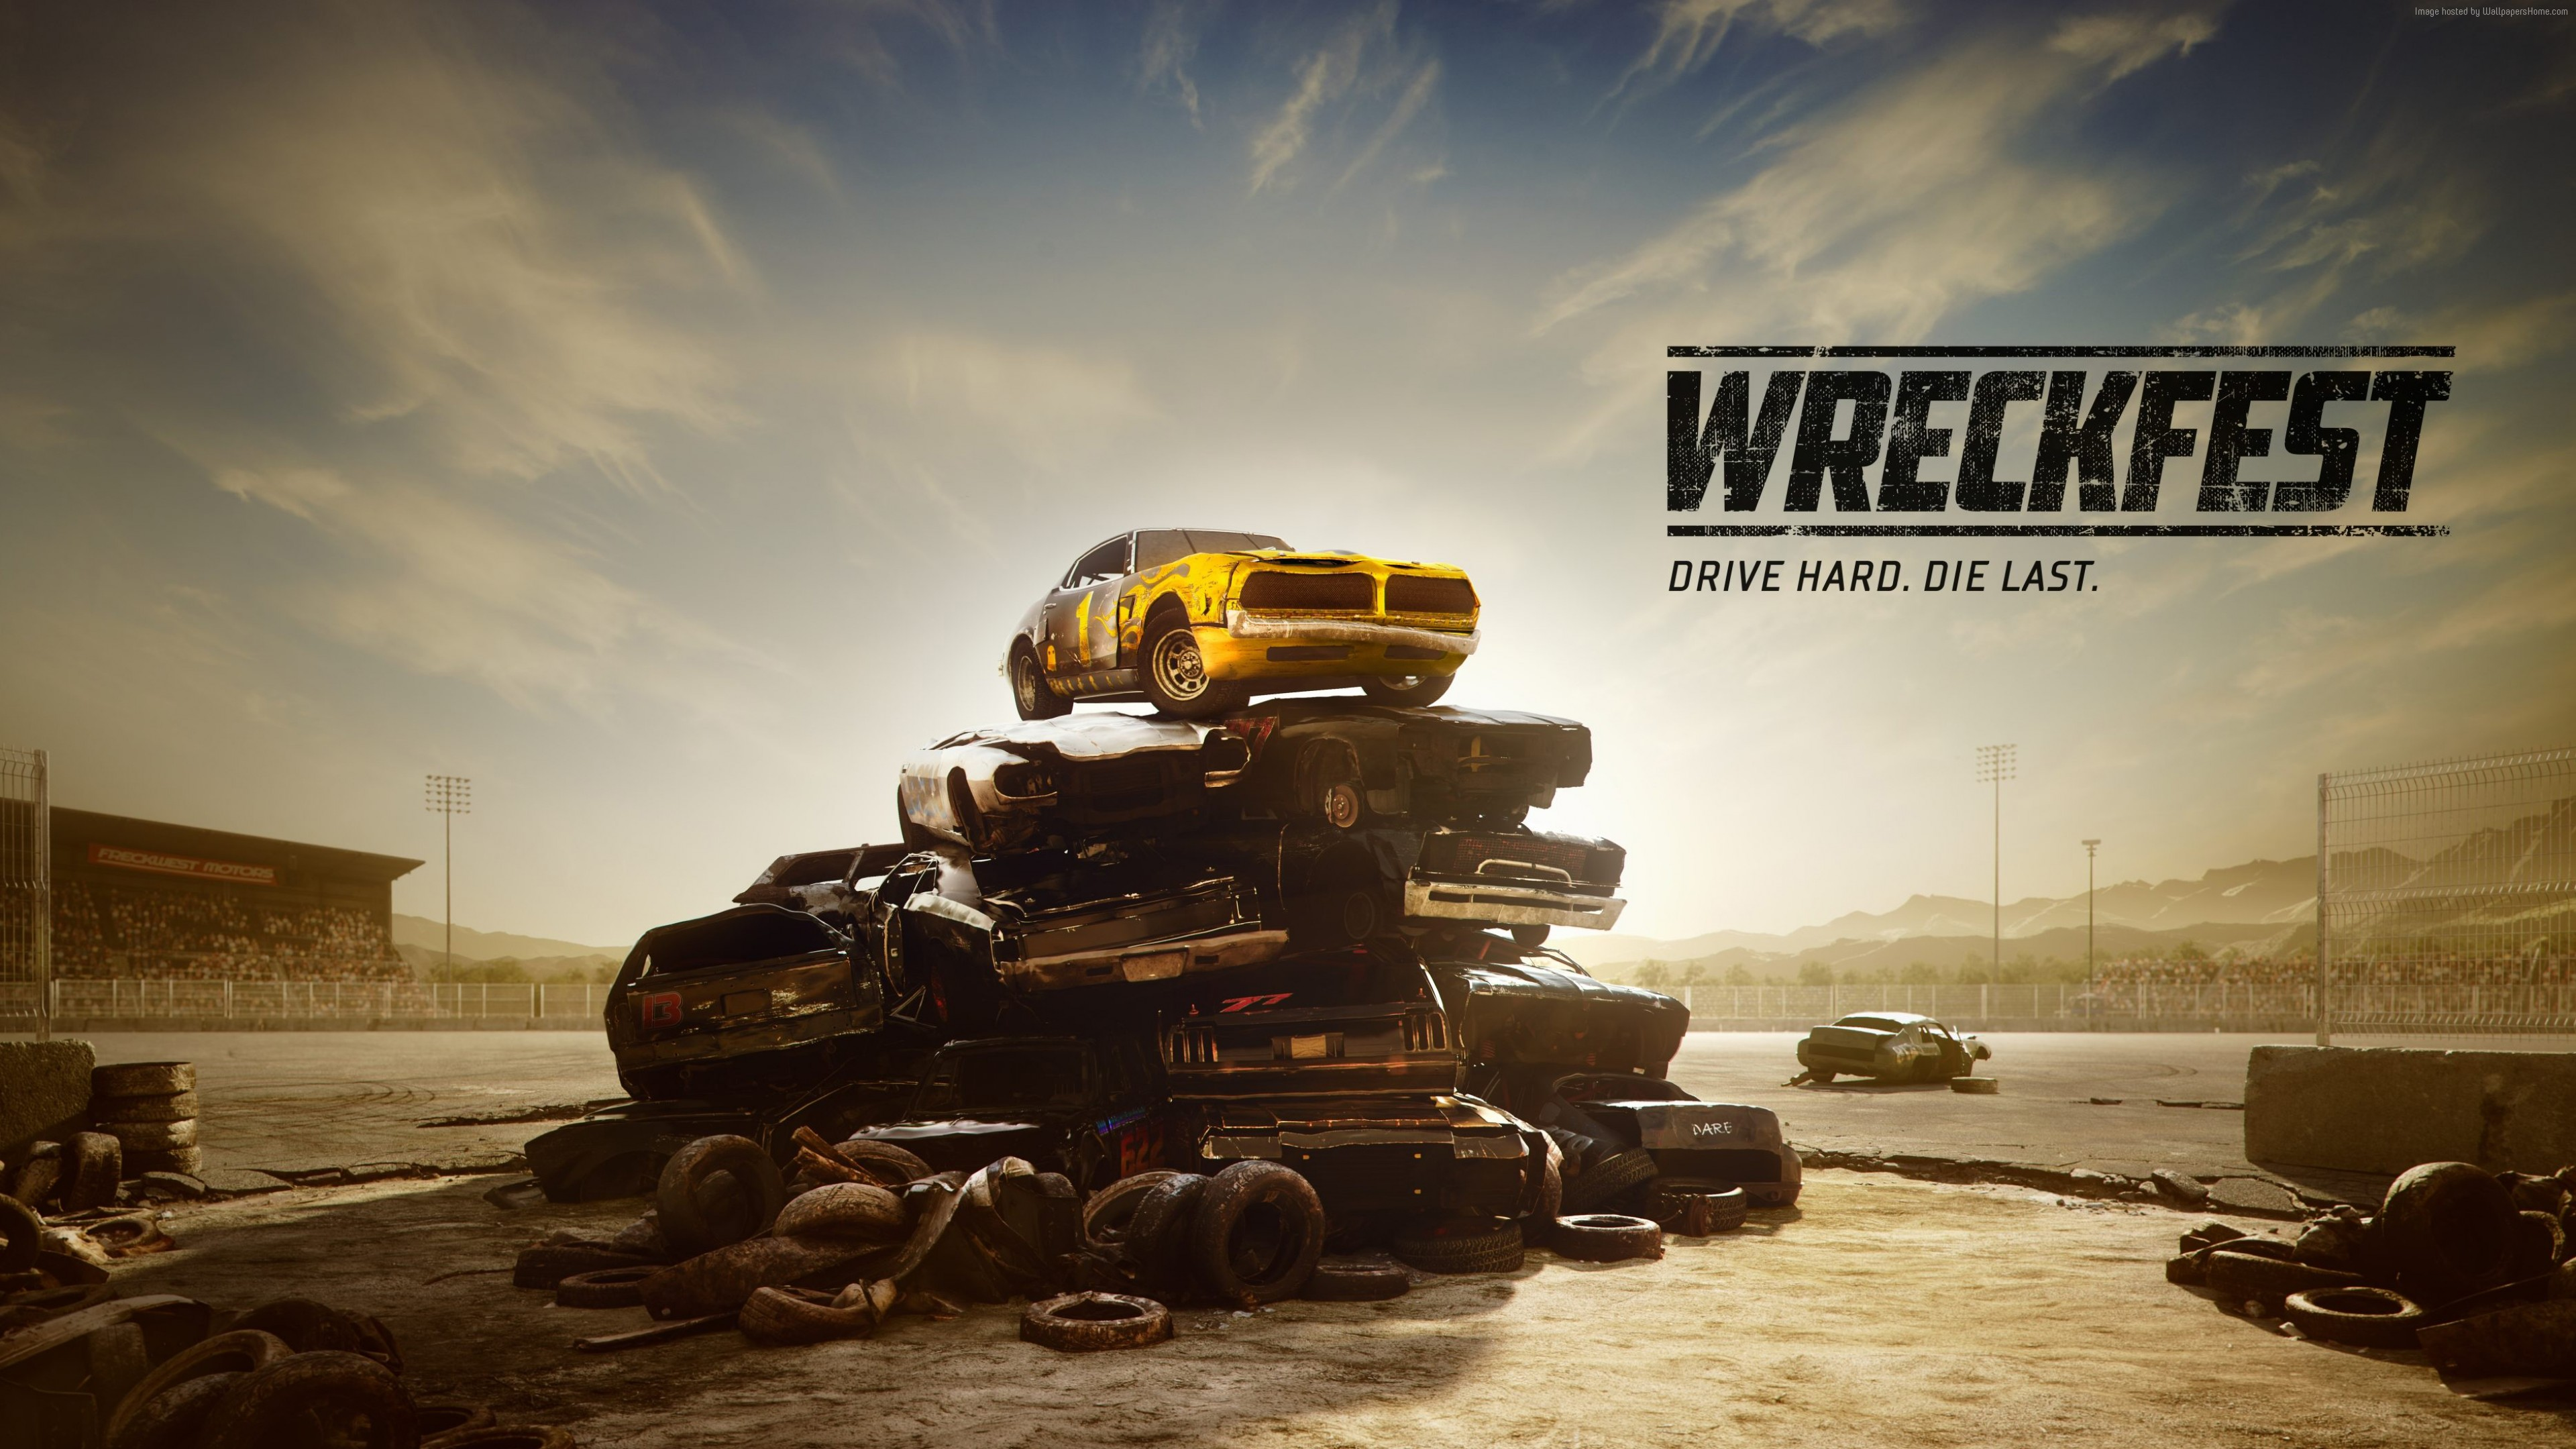 Wallpaper Wreckfest, Next Car Game, E3 2018, poster, 4K, Games